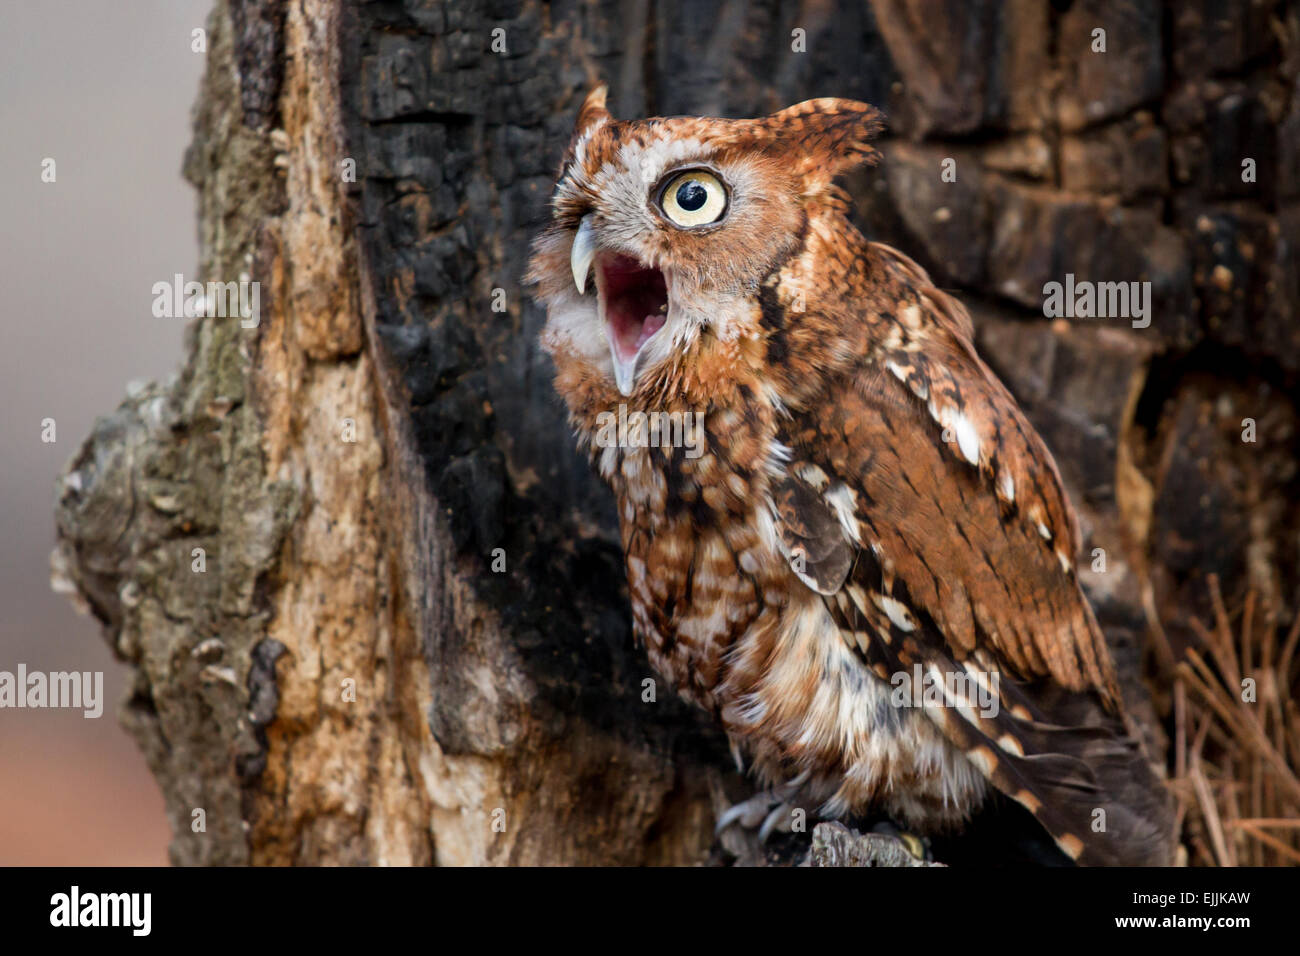 A screech owl perched in a burned out tree while calling. - Stock Image